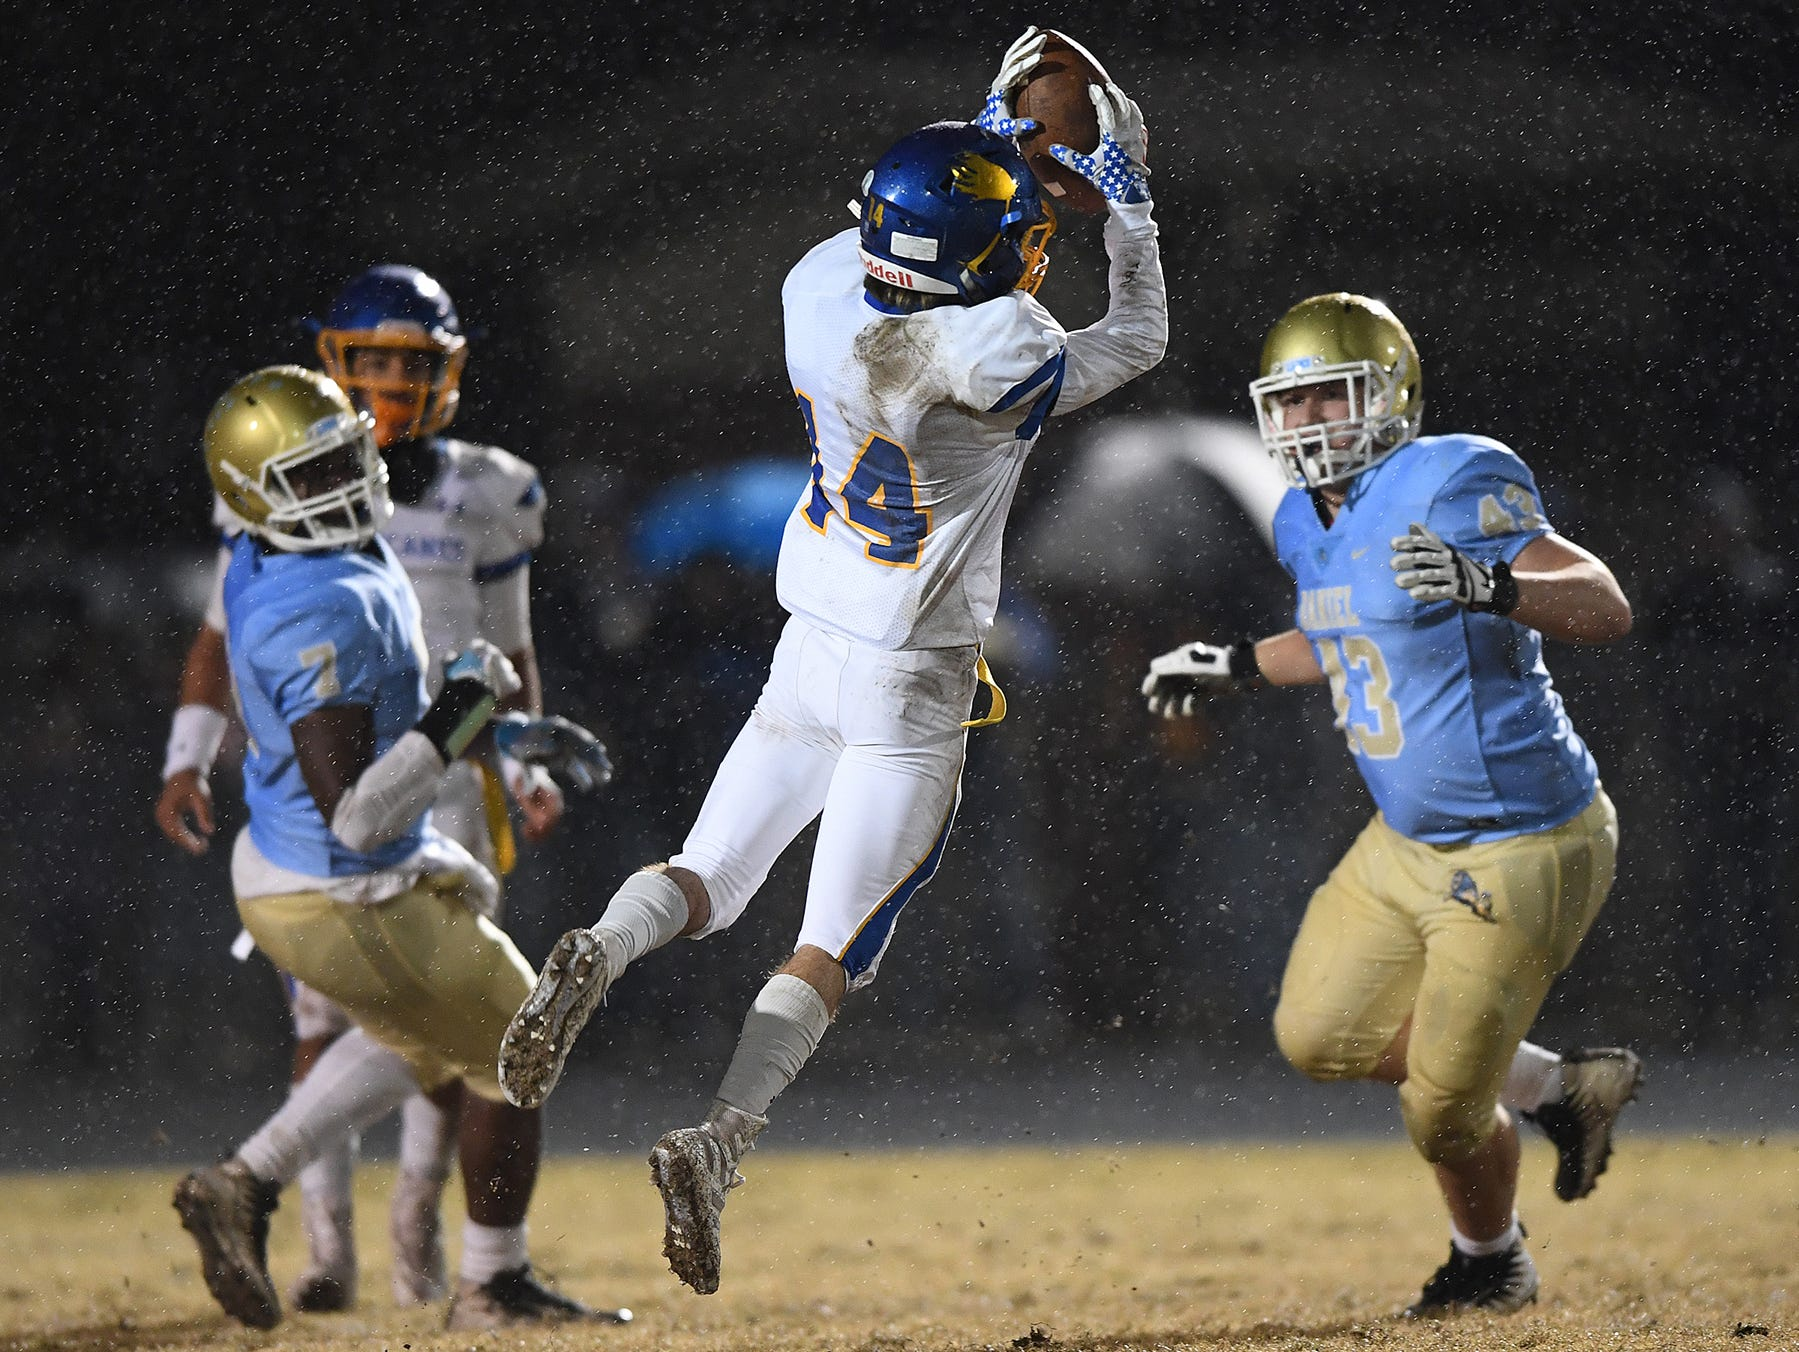 Wren's Luke Bryant (14) makes a reception against Daniel during the third round of the class AAAA playoffs Friday, November 23, 2018, at Daniel High in Central.